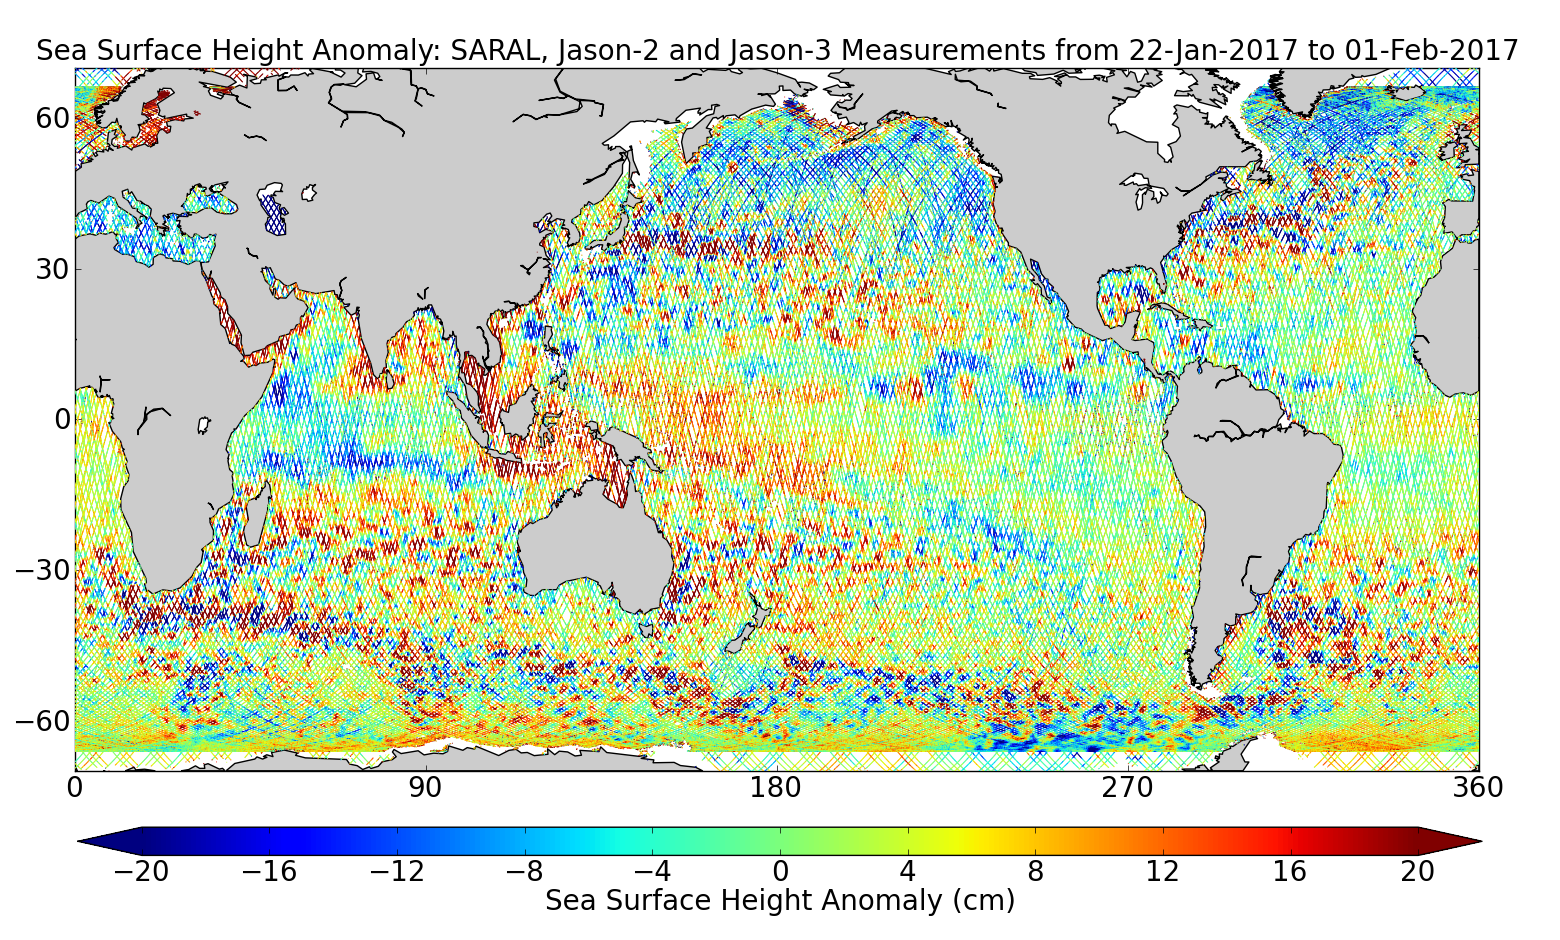 Sea Surface Height Anomaly: SARAL, Jason-2 and Jason-3 Measurements from 22-Jan-2017 to 01-Feb-2017